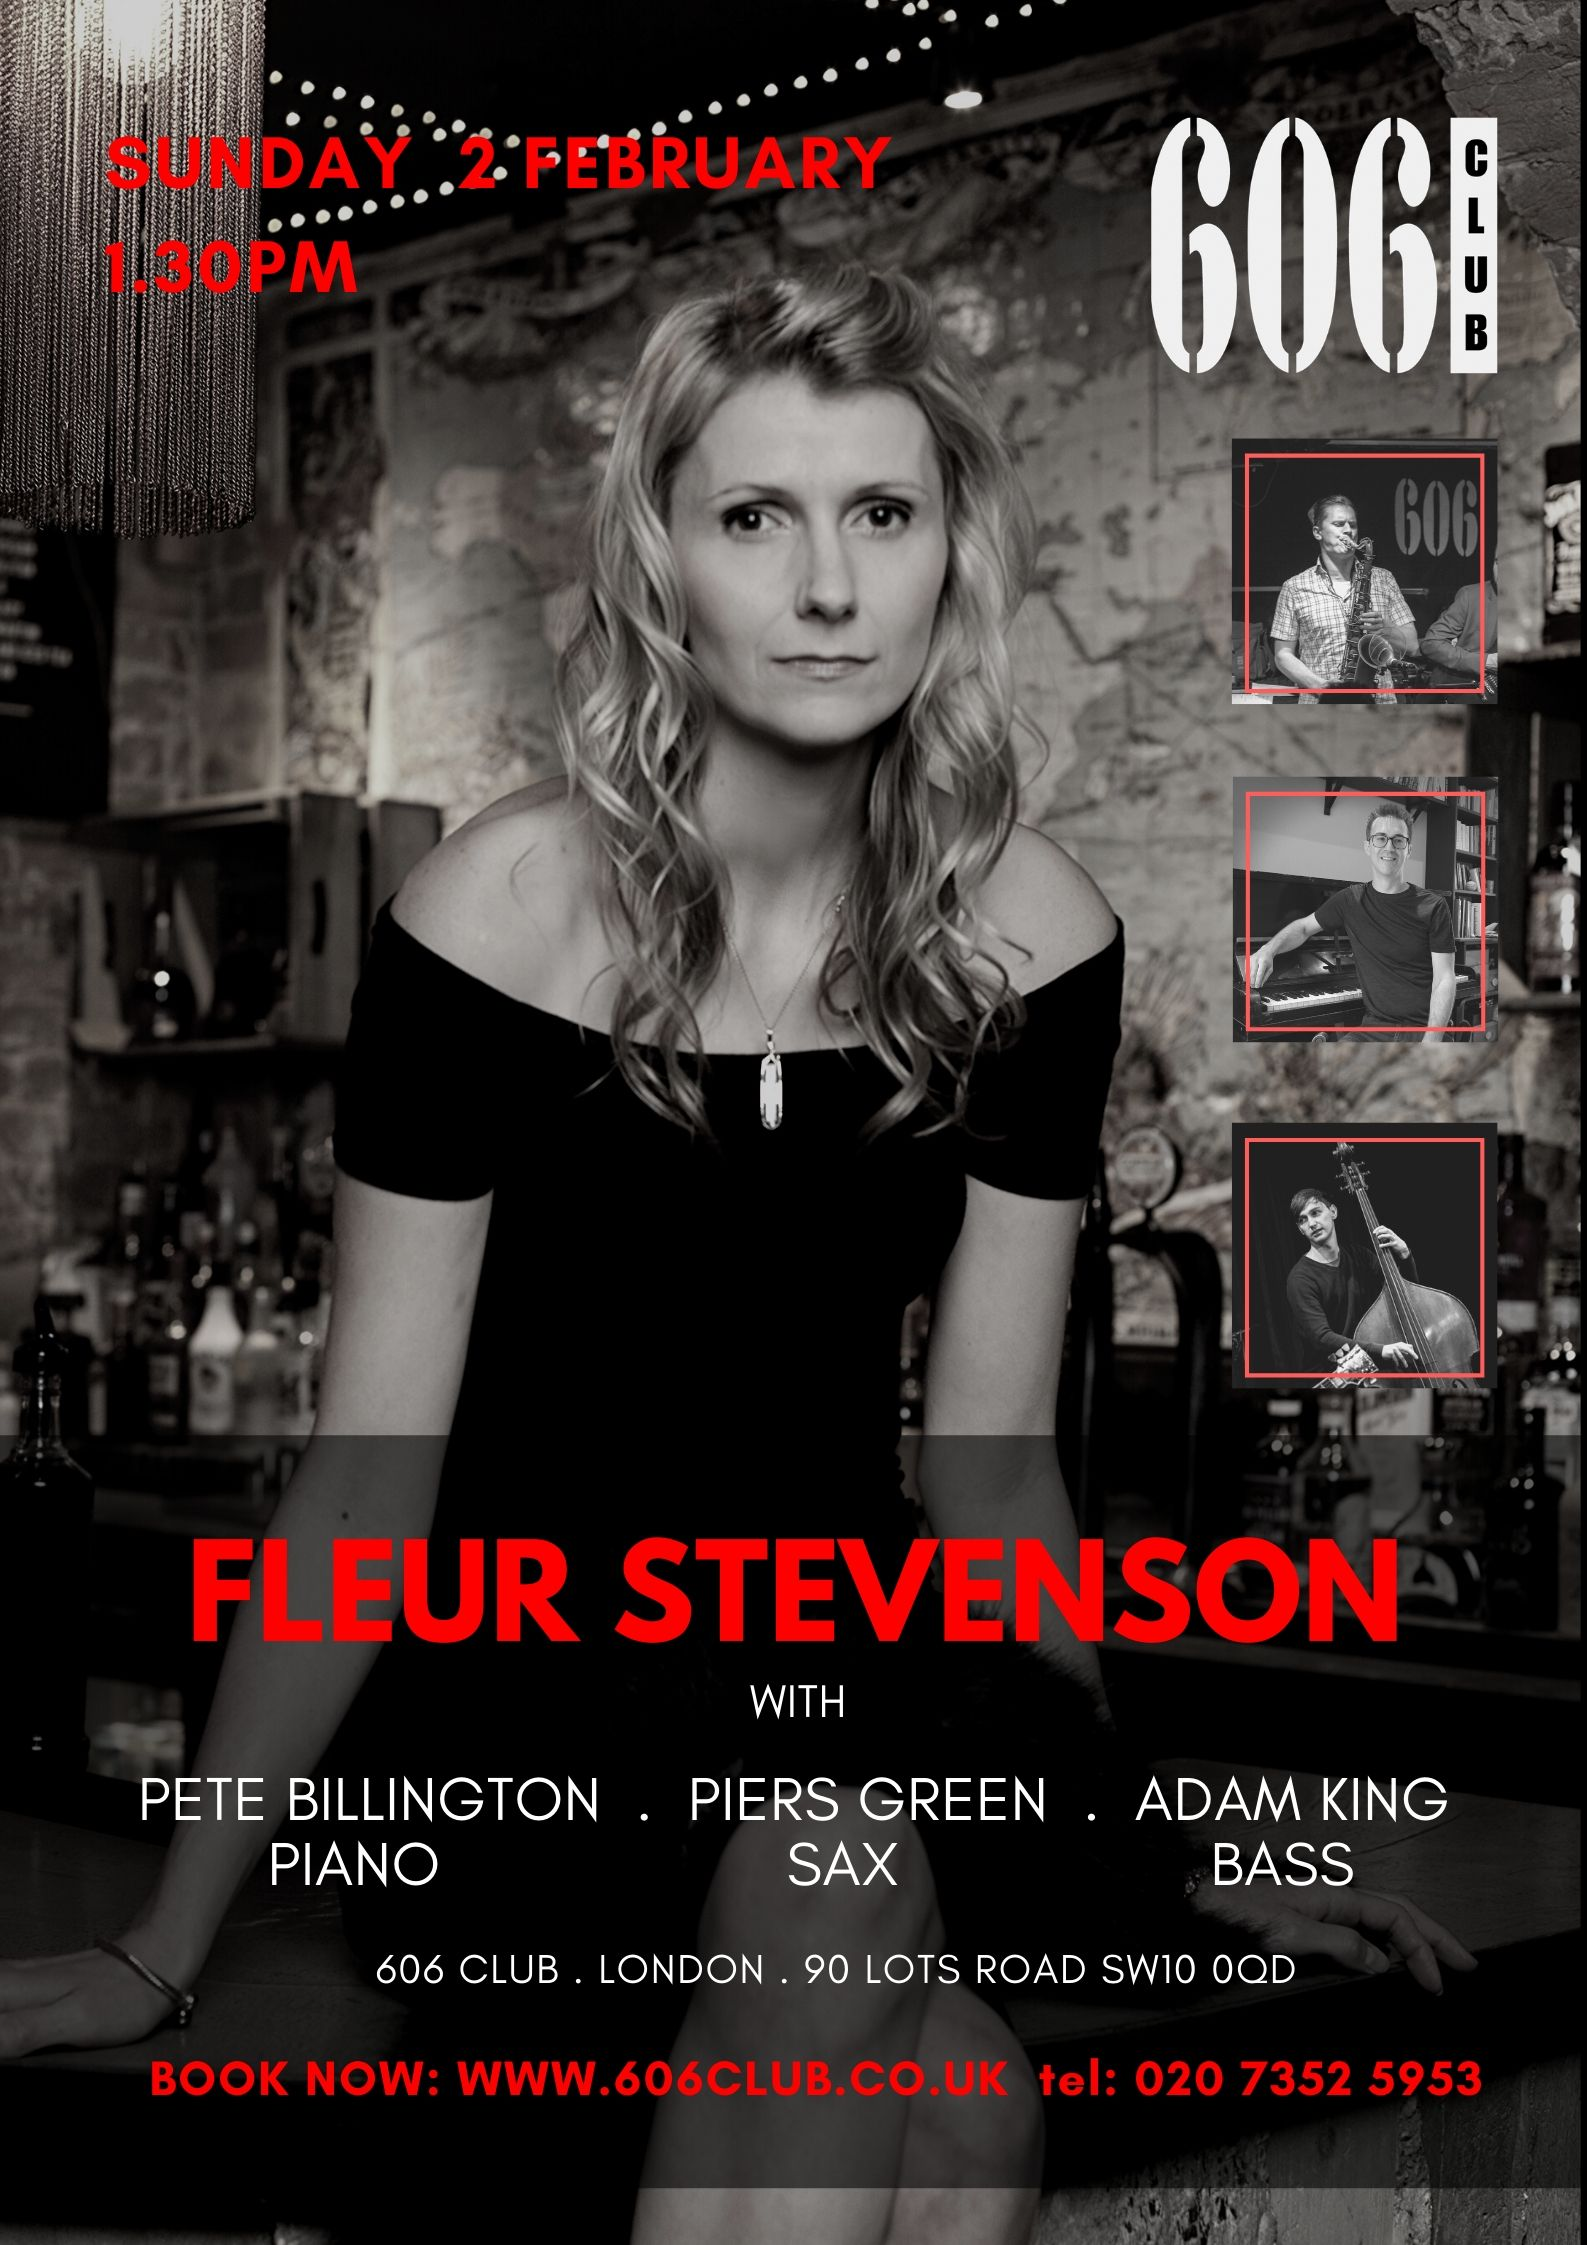 Lunchtime Special With Fleur Stevenson